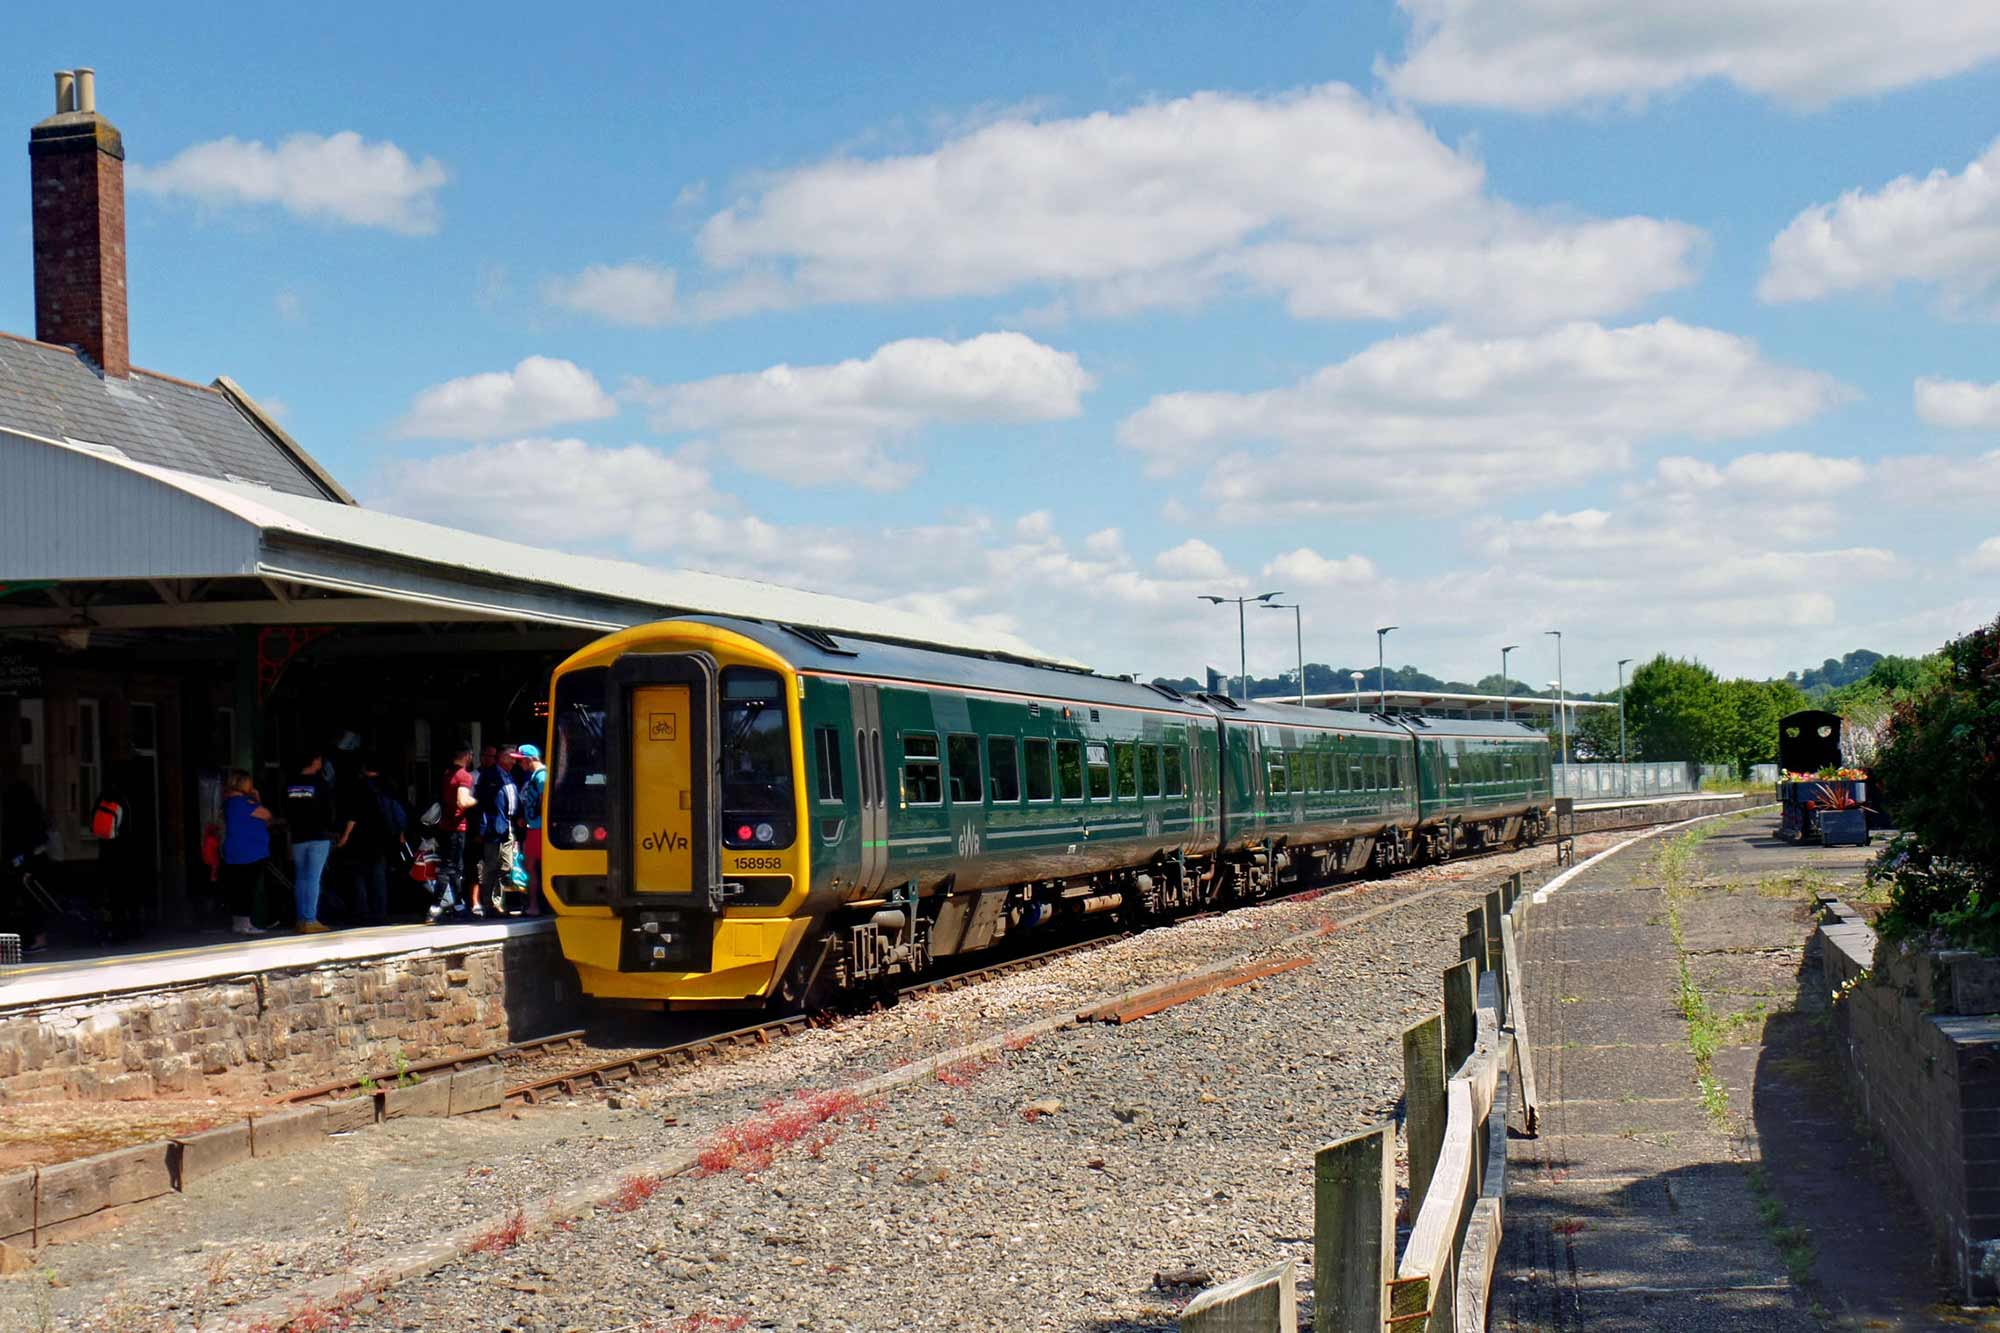 Class 158 train at Barnstaple station